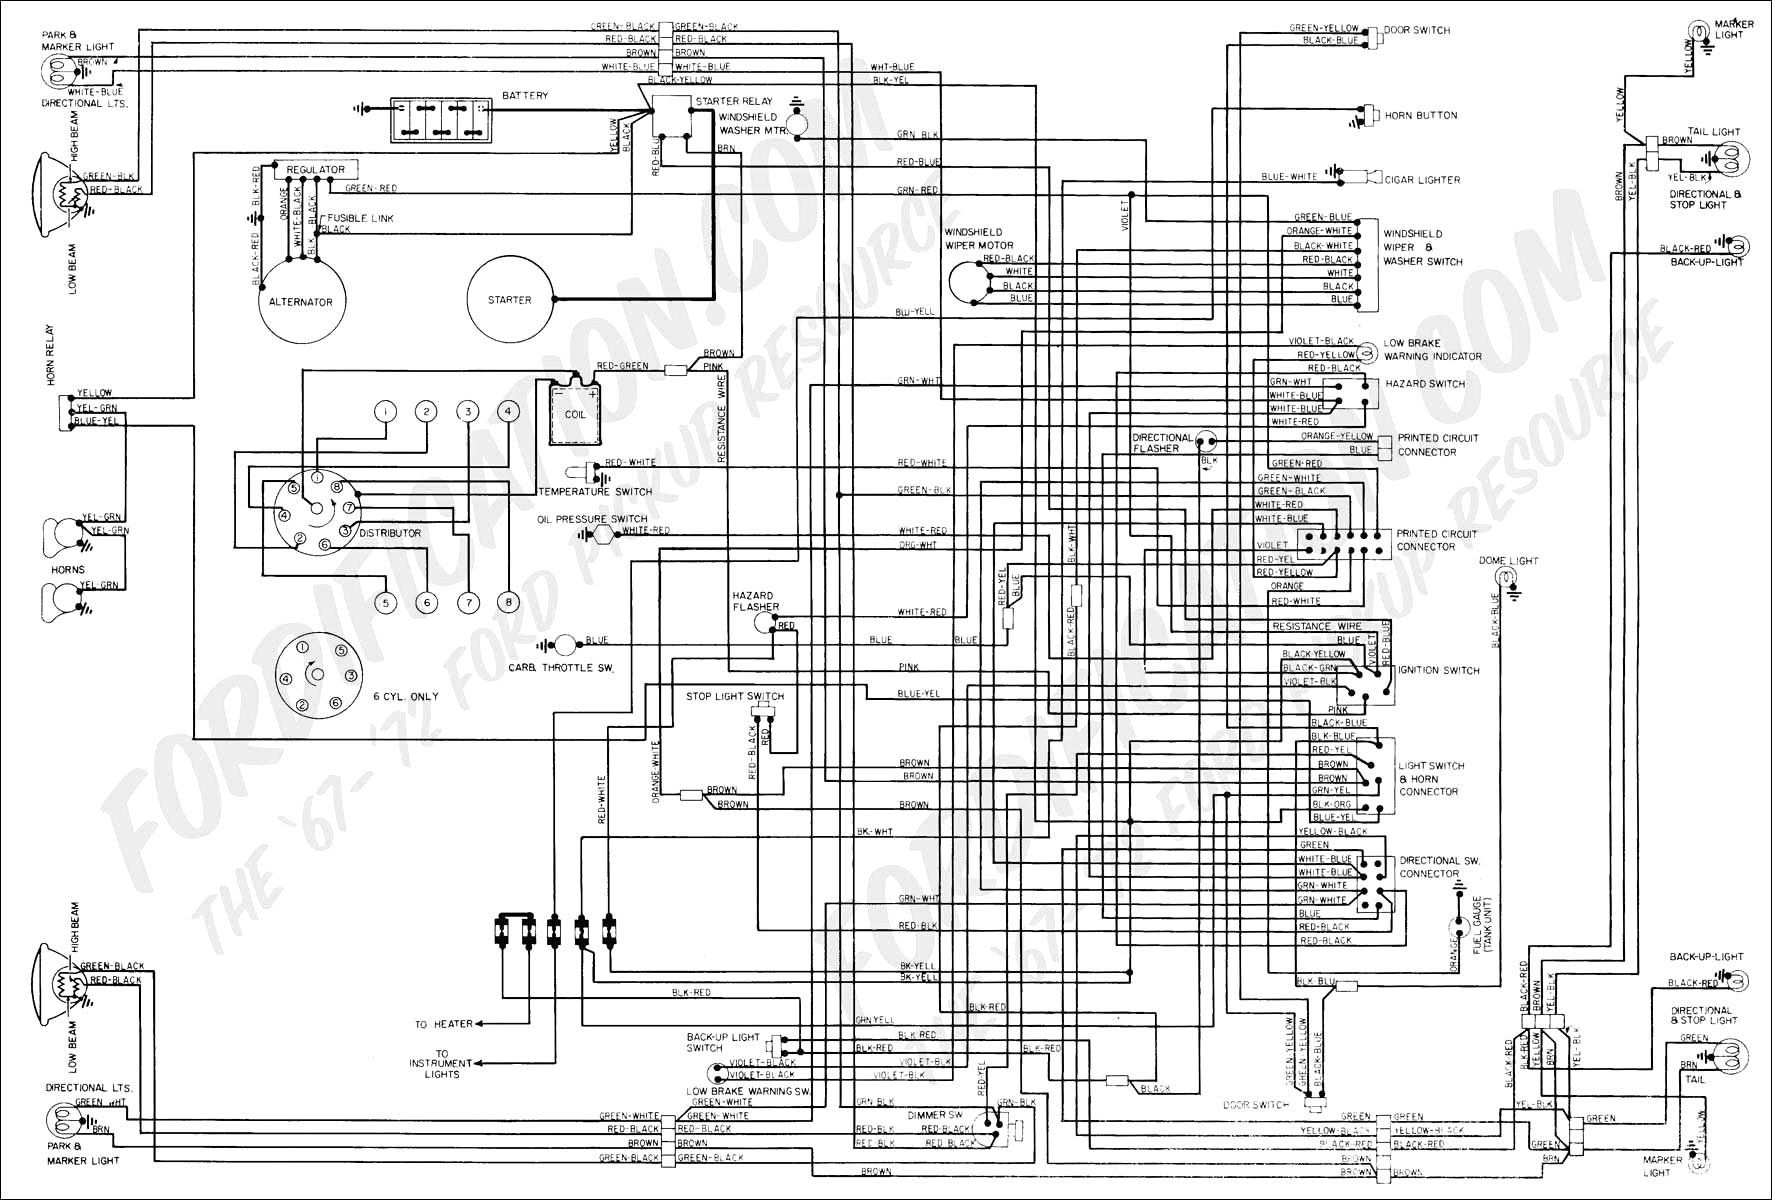 2006 Ford F350 Wiring Diagram Data Wiring Diagrams With Ford F250 Wiring Diagram Ford Courier Electrical Wiring Diagram F150